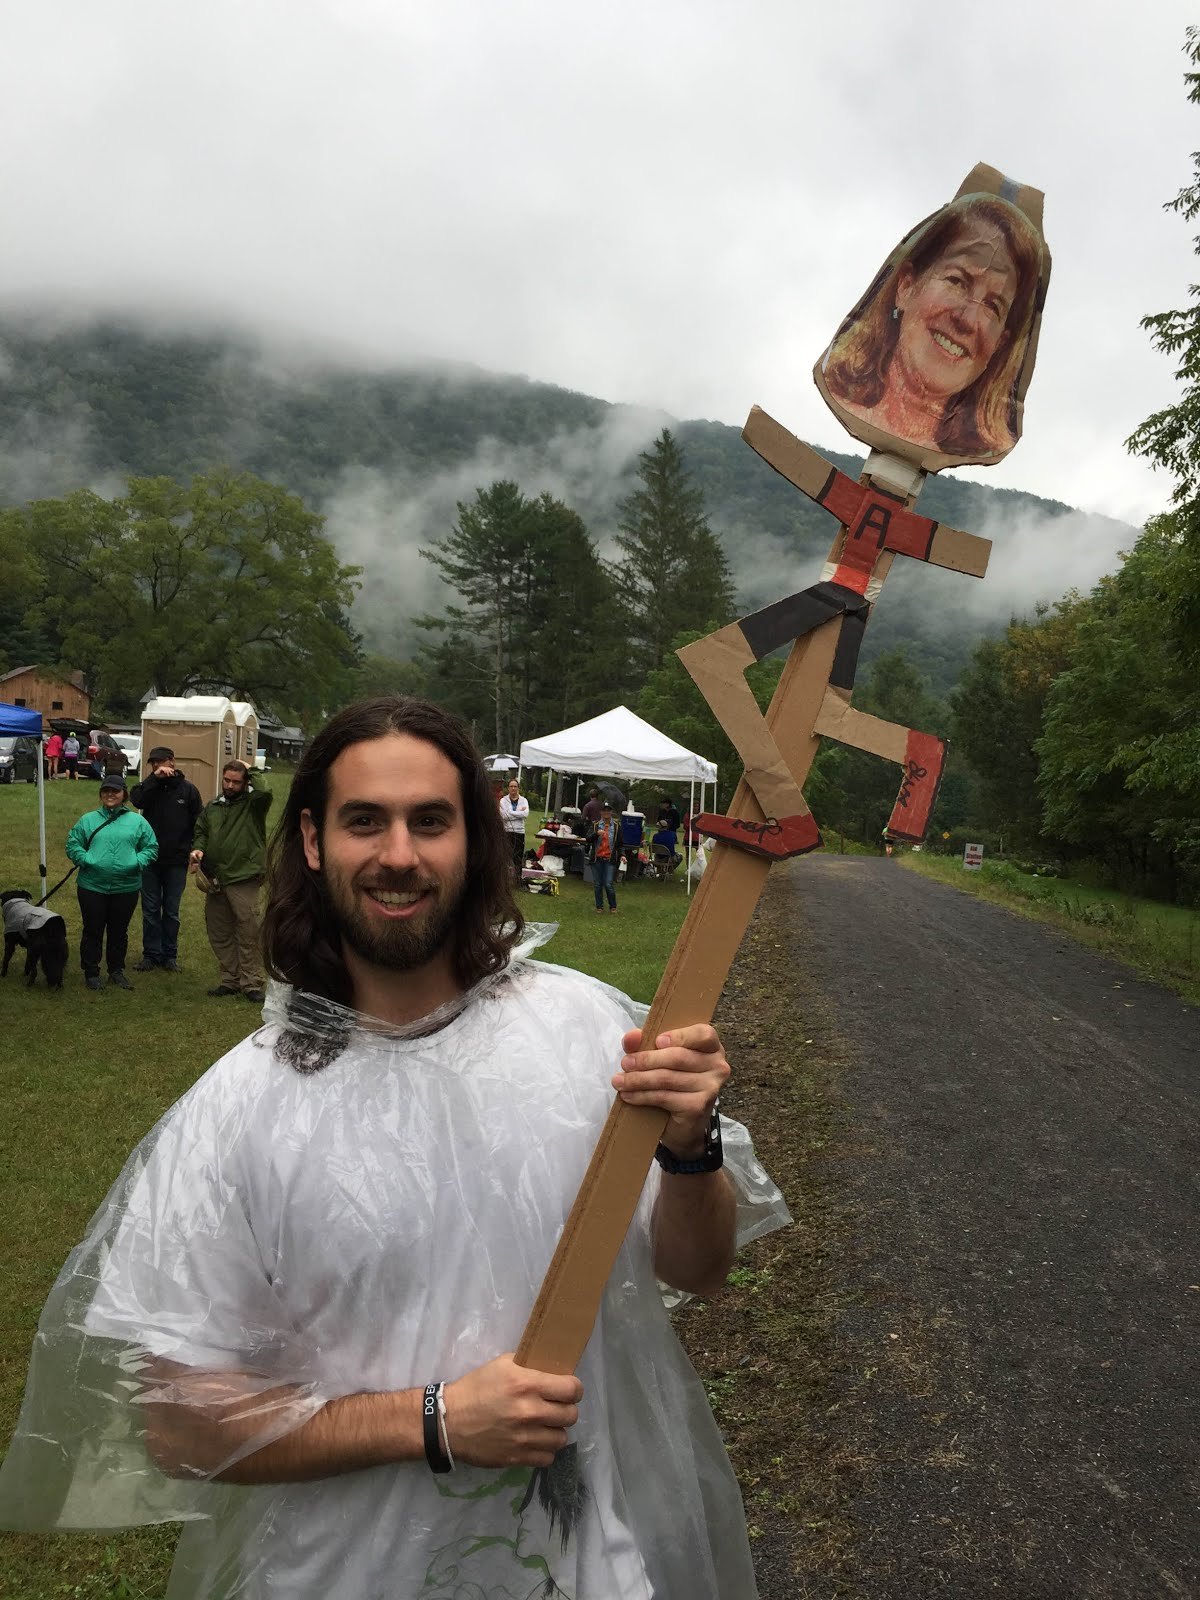 Amy on a Stick!